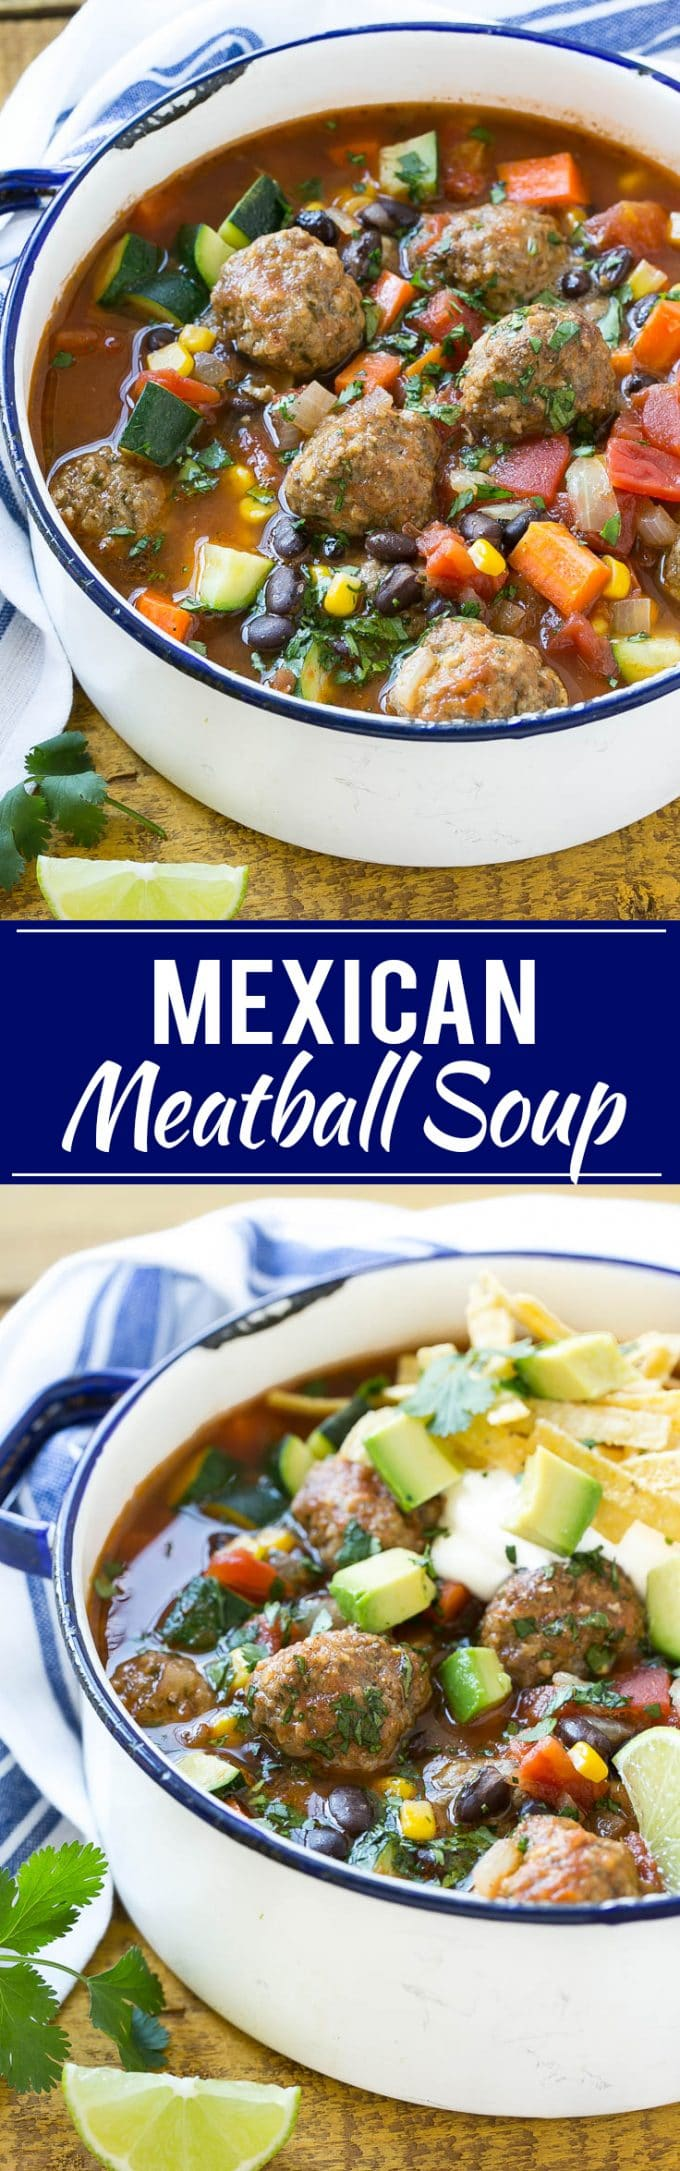 Mexican Meatball Soup Recipe | Easy Mexican Meatball Soup | Best Mexican Meatball Soup | Mexican Soup